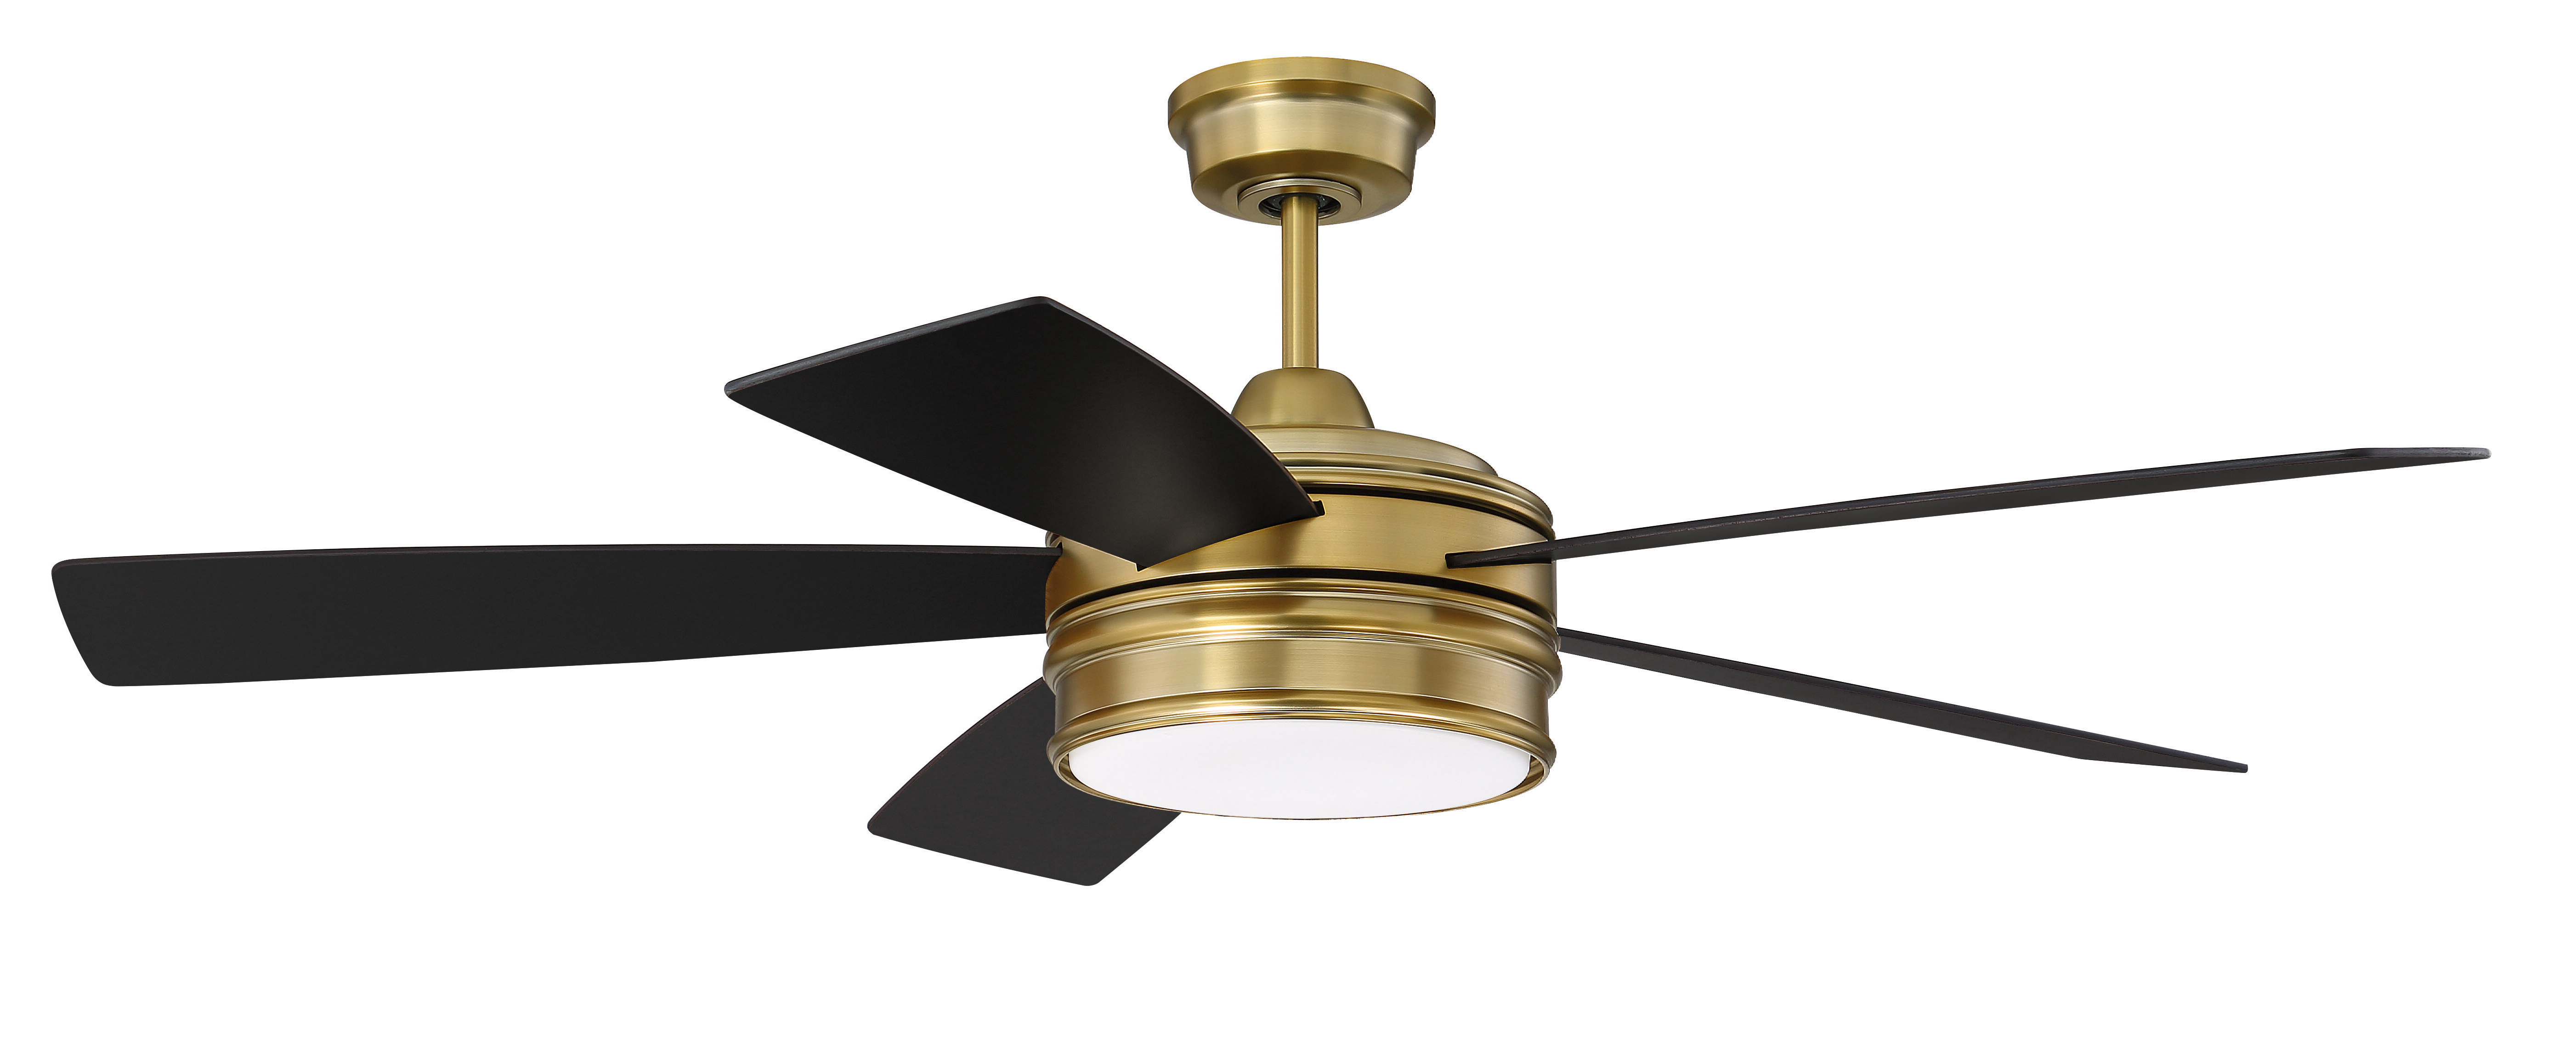 "2019 Windemere 5 Blade Ceiling Fans With Remote Throughout 52"" Winchcombe 5 Blade Led Ceiling Fan With Remote Light Kit (View 1 of 20)"